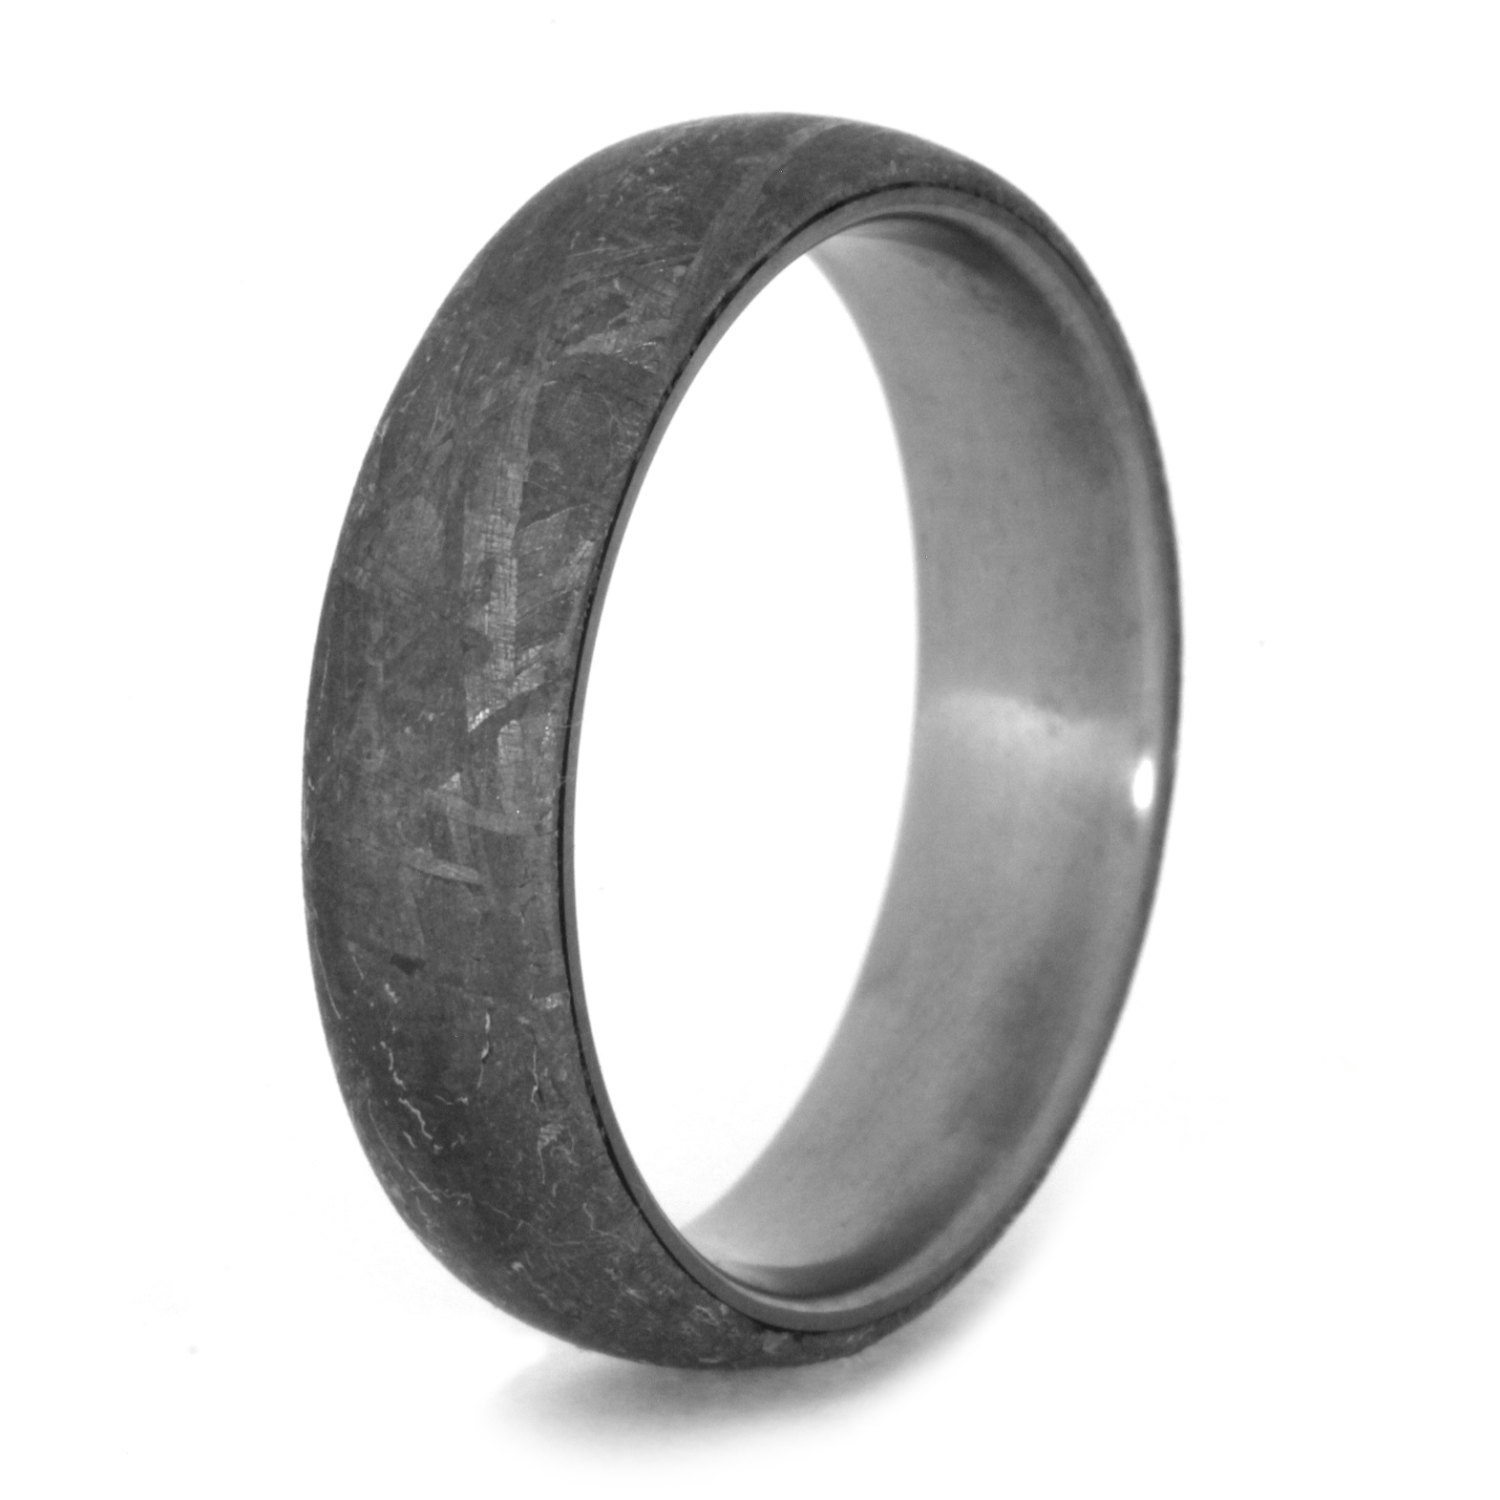 Simple Meteorite Ring in Titanium, Masculine Mens Wedding Band With Meteorite Overlay